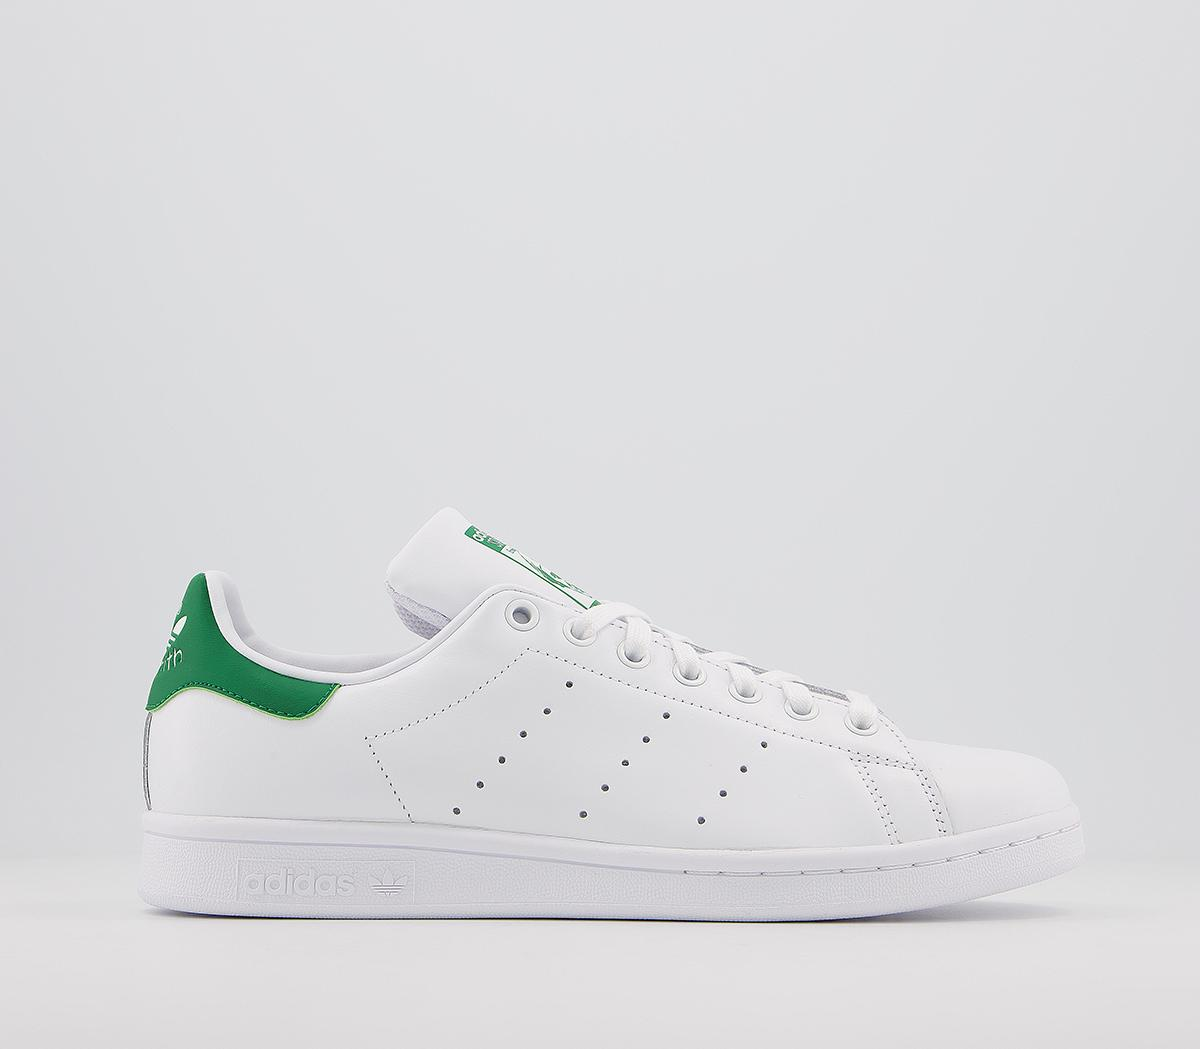 Paisaje ilegal tanque  adidas Stan Smith Trainers Core White Green - Unisex Sports